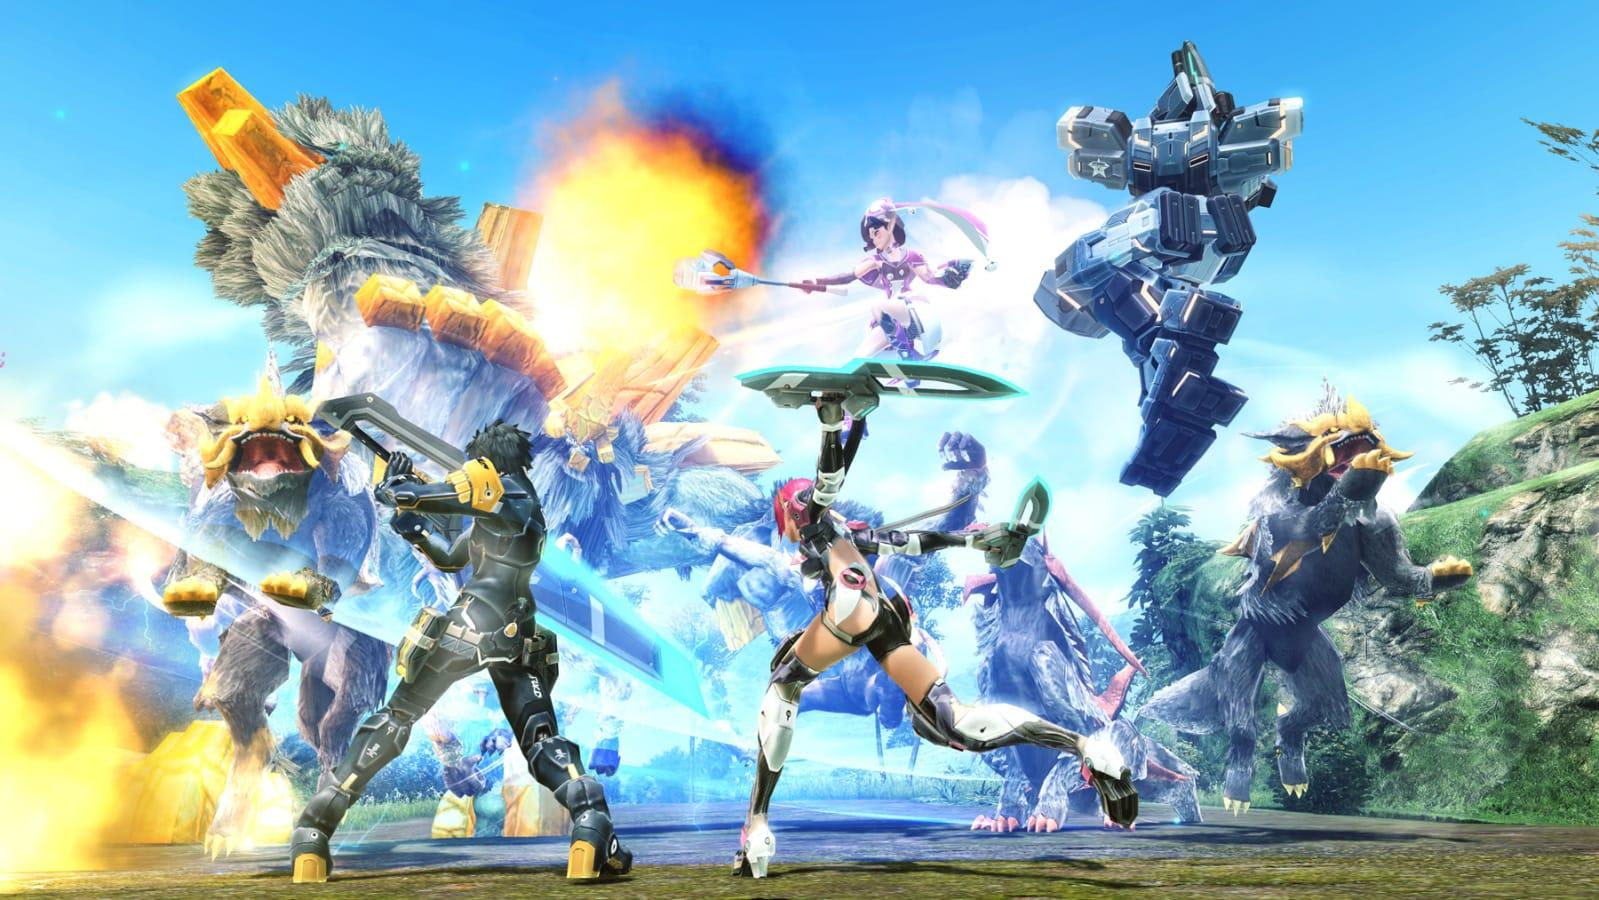 Phantasy Star Online 2 Will Finally Come To North America Next